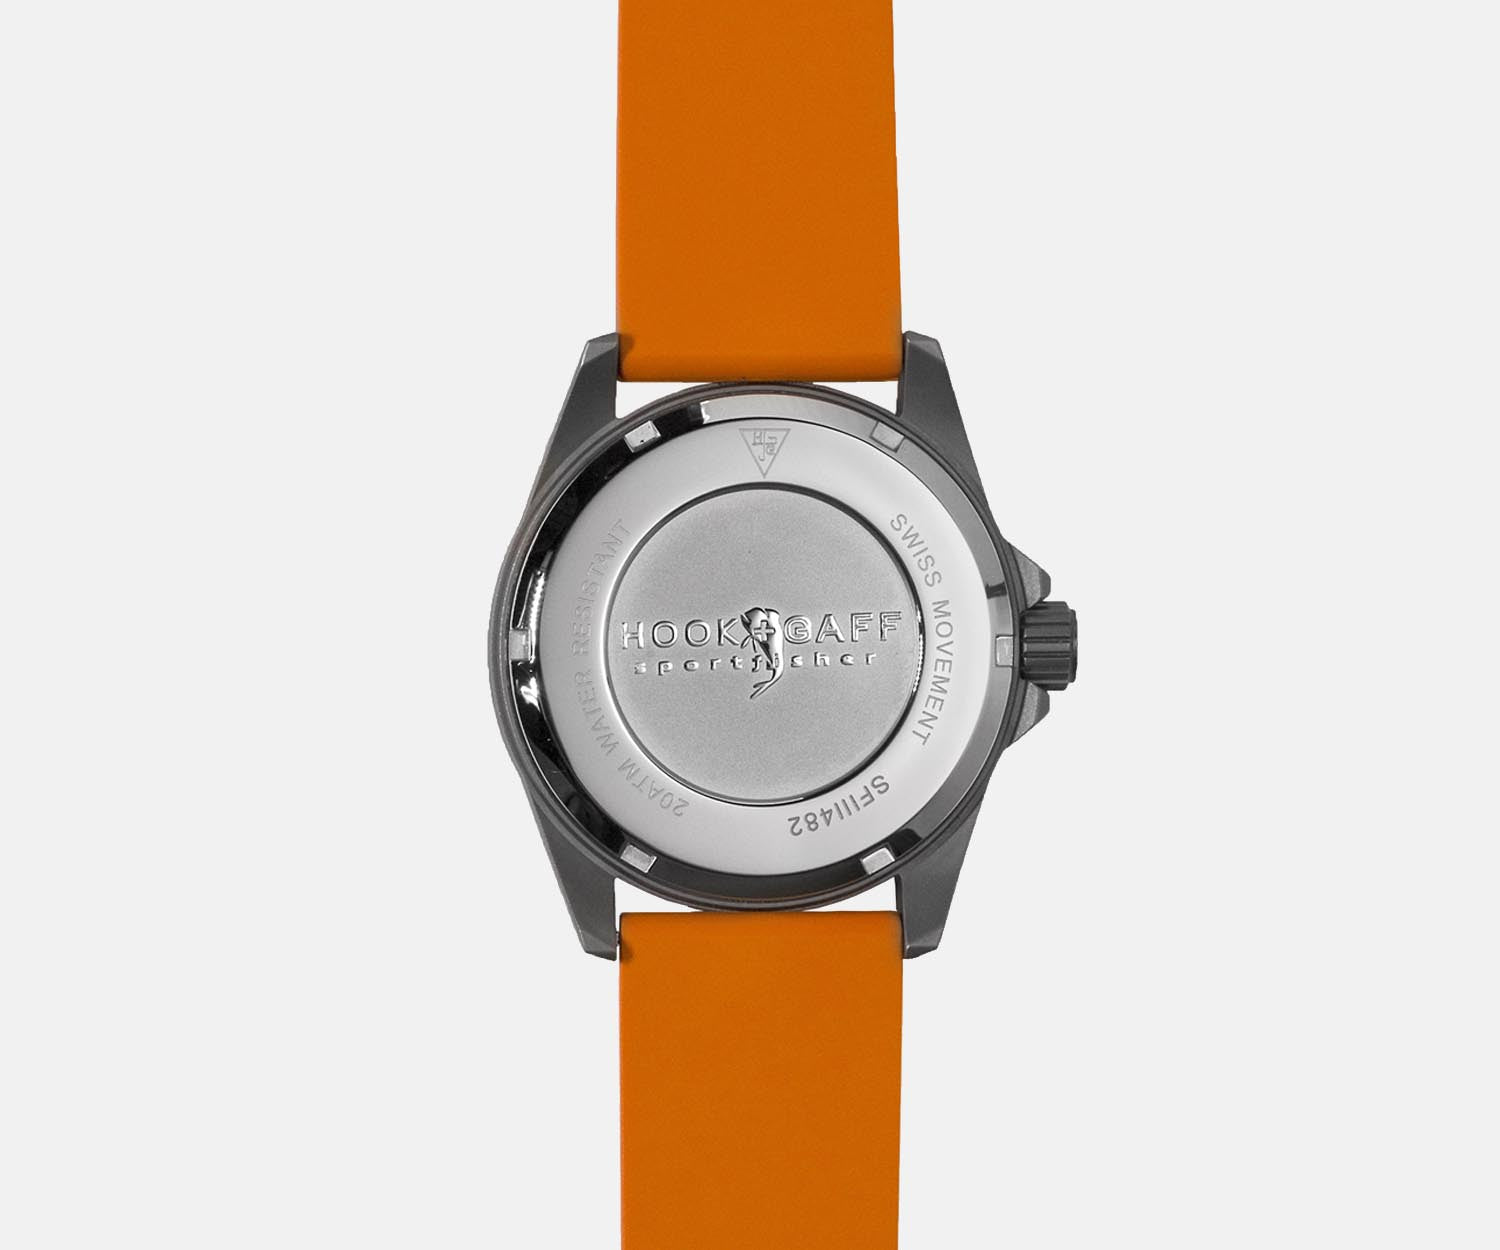 Sportfisher II Classic Silver Dial Watch - Orange Dive Strap - Back